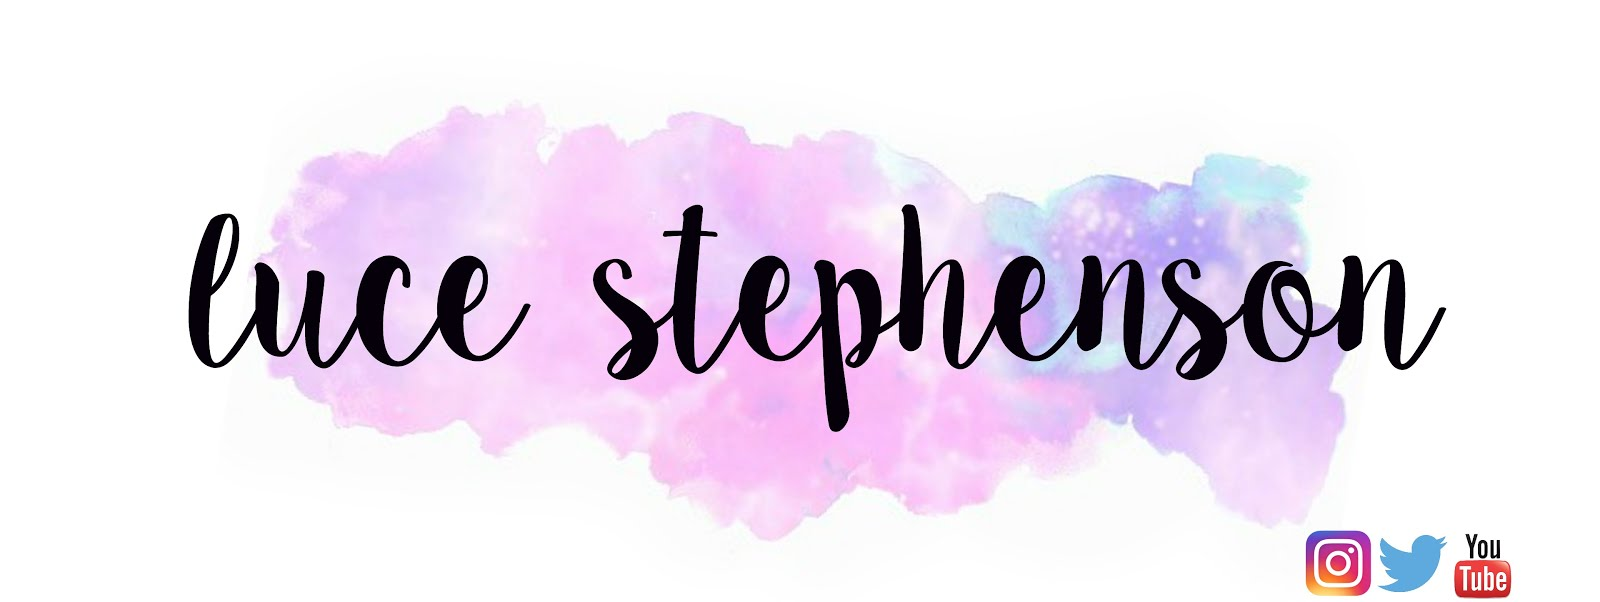 Luce Stephenson | UK Beauty Blog & YouTuber